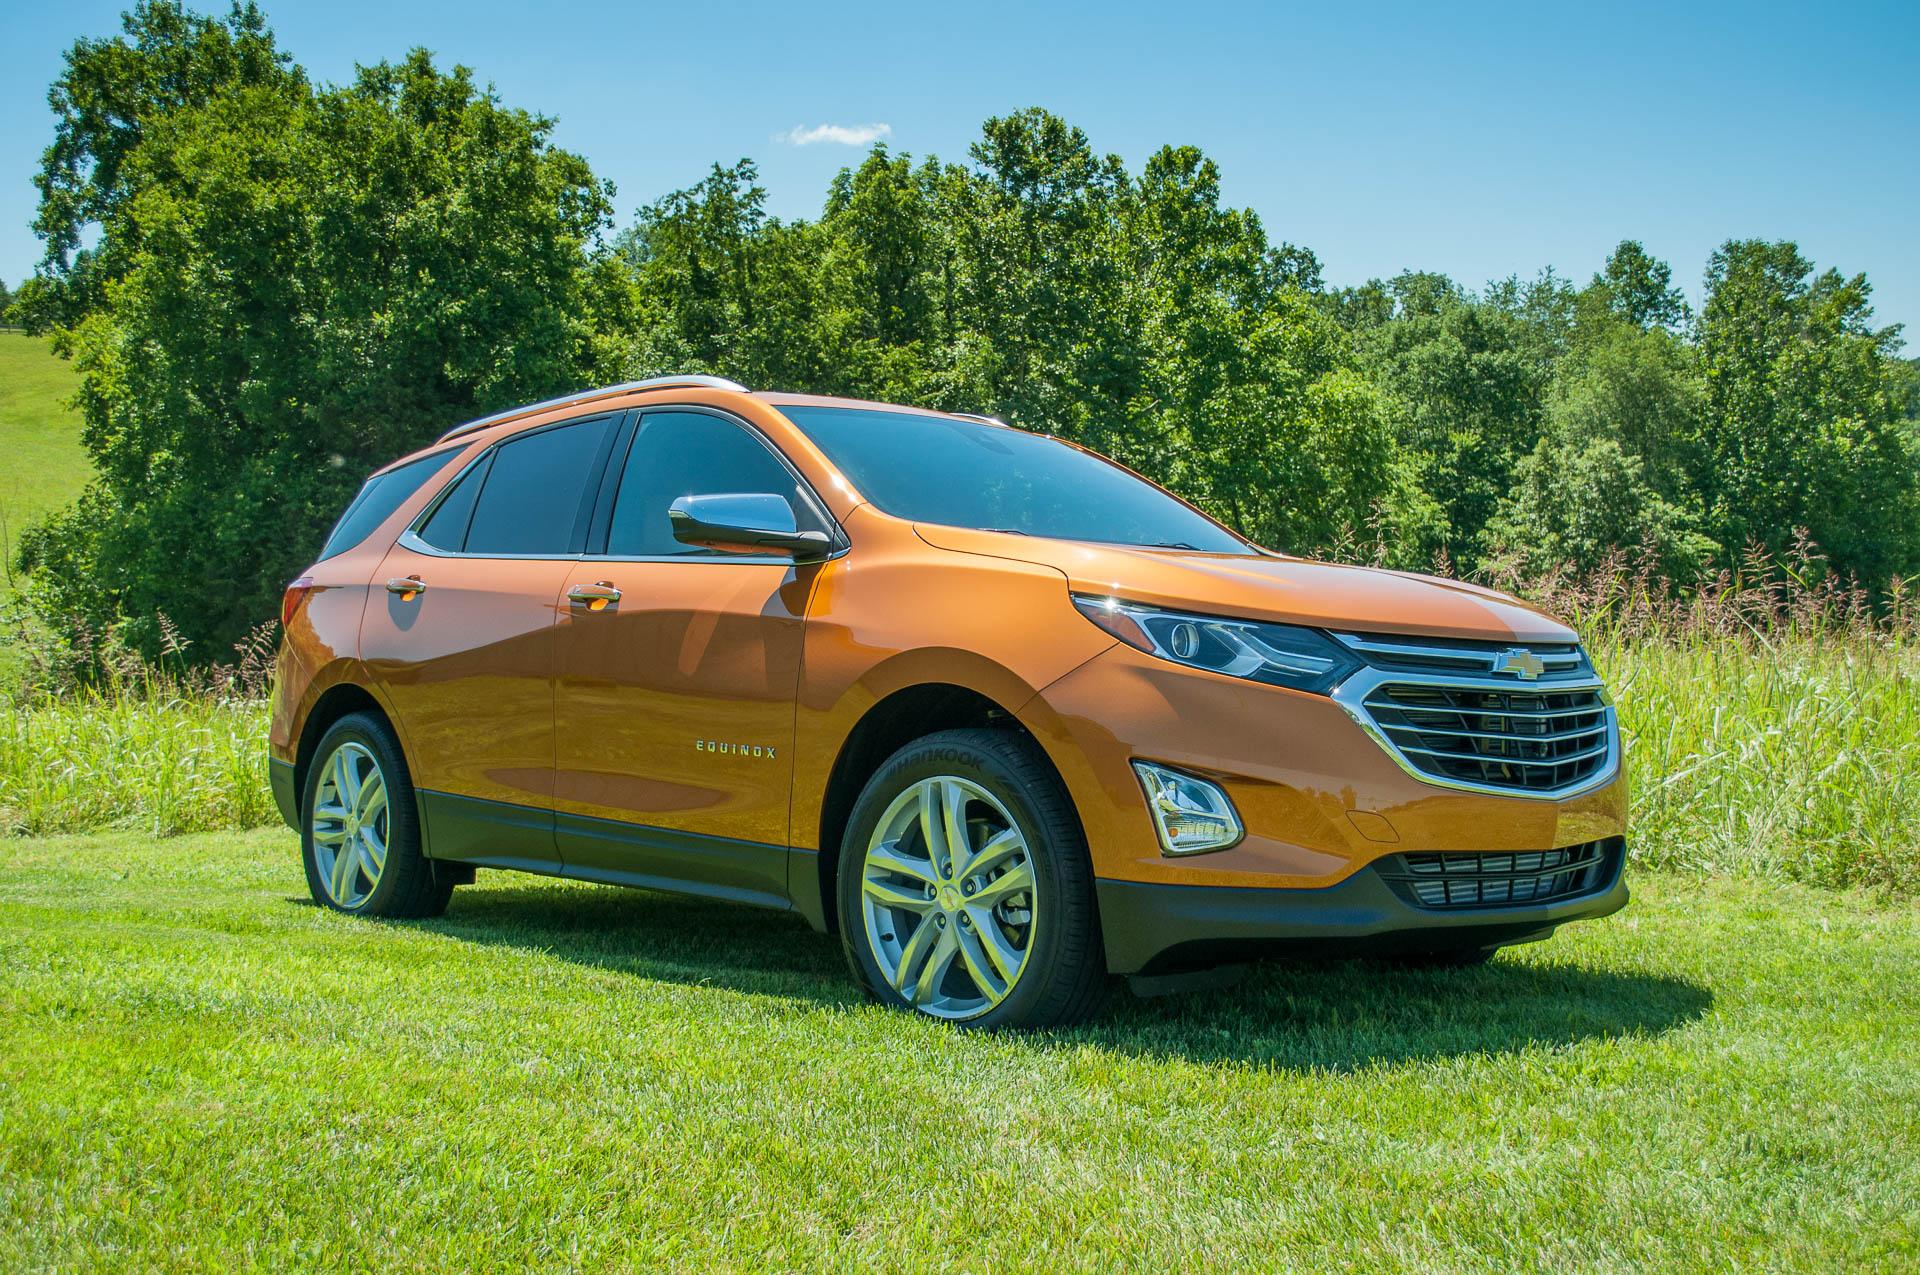 2018 chevrolet equinox 2 0t first drive more power more gears. Black Bedroom Furniture Sets. Home Design Ideas